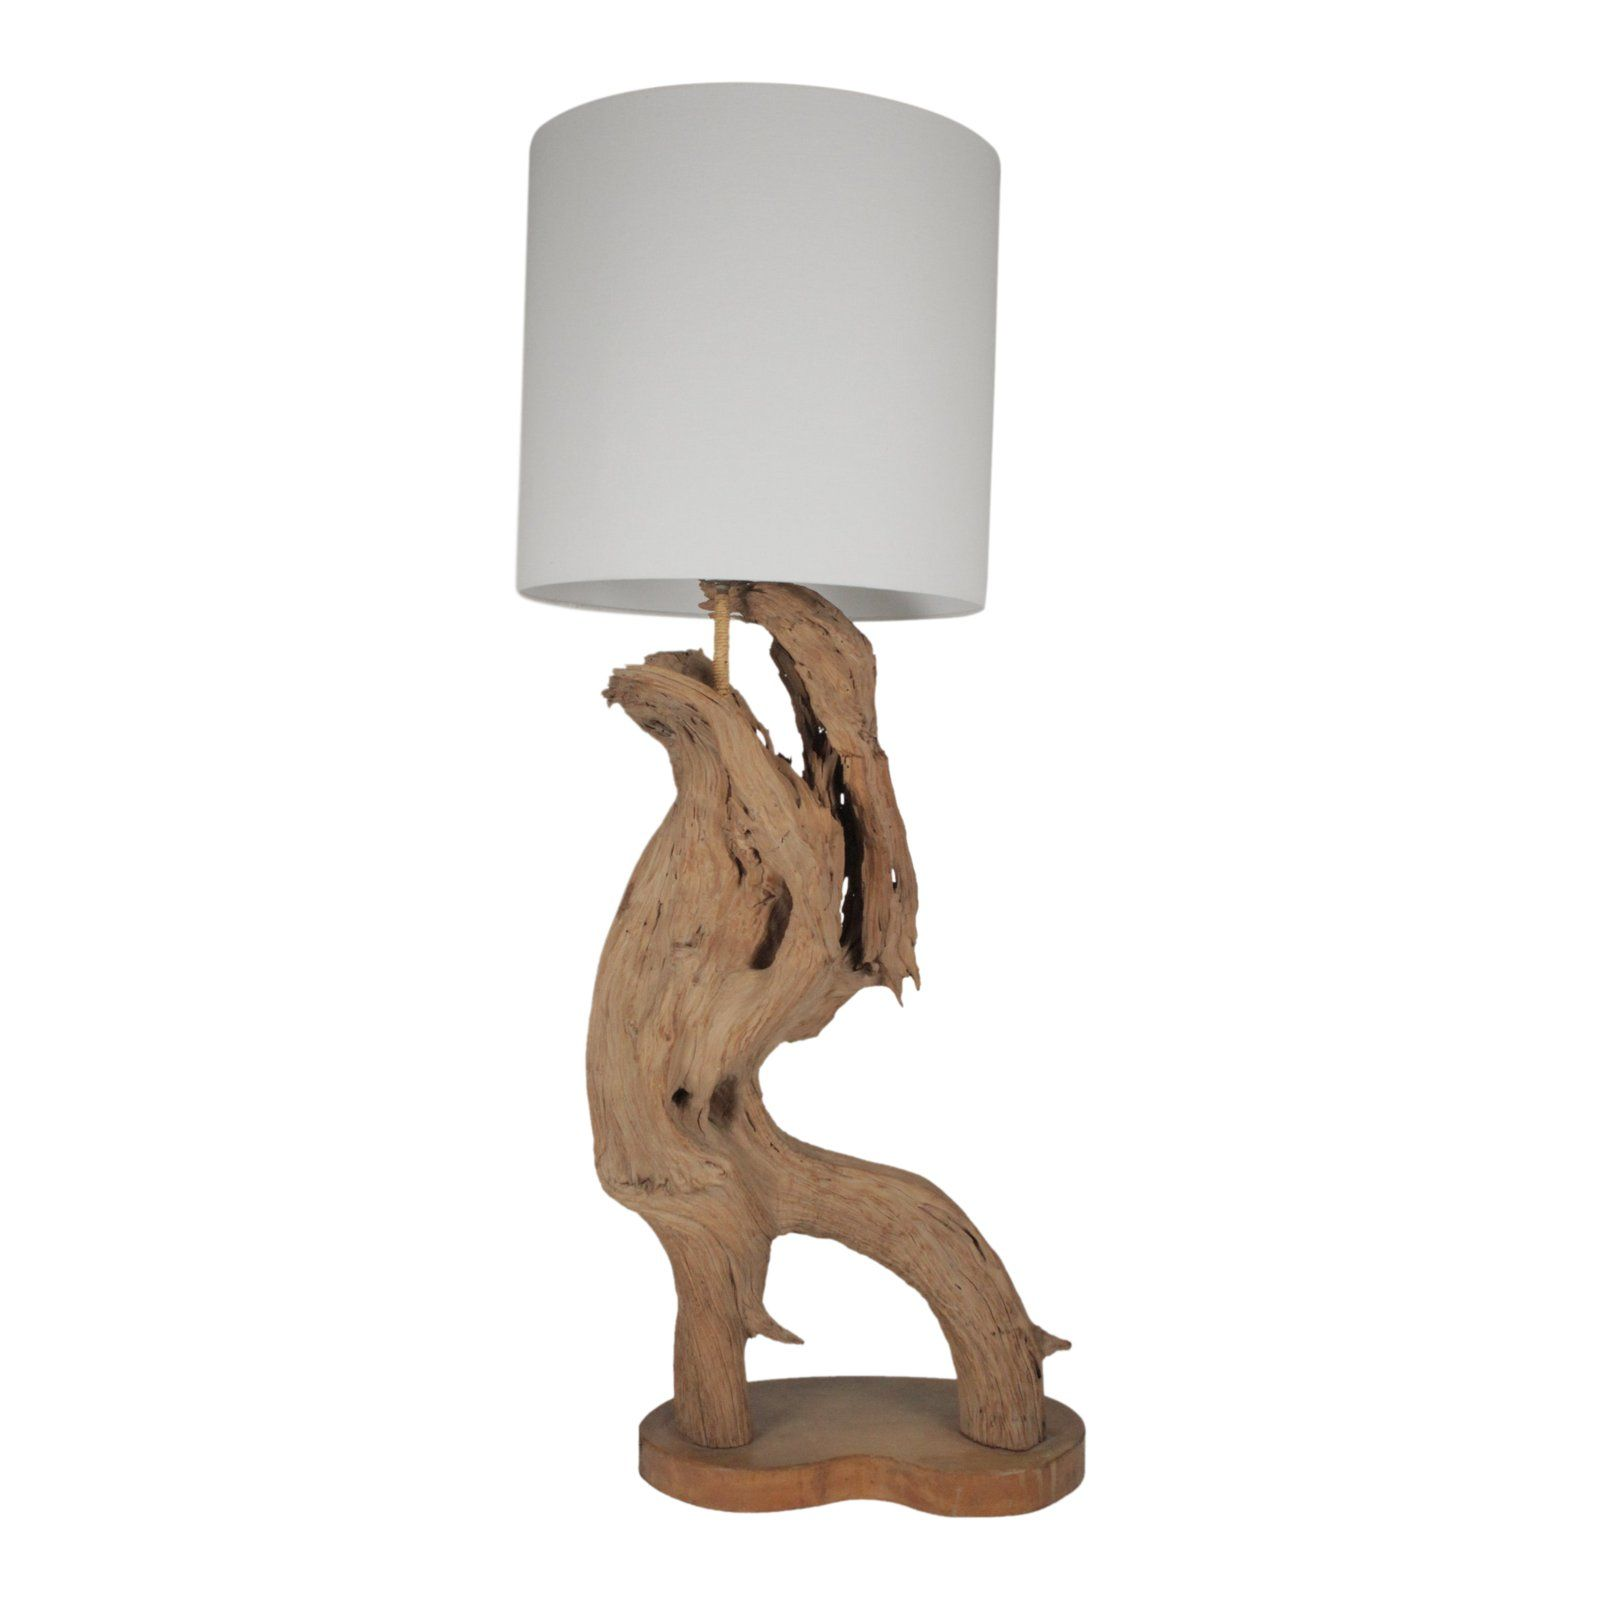 This Is A Sculptural Driftwood Table Lamp The Shade Is Not Included In The Sale And Shown To Give Proportion To The Lamp Lamp Driftwood Lamp Table Lamp